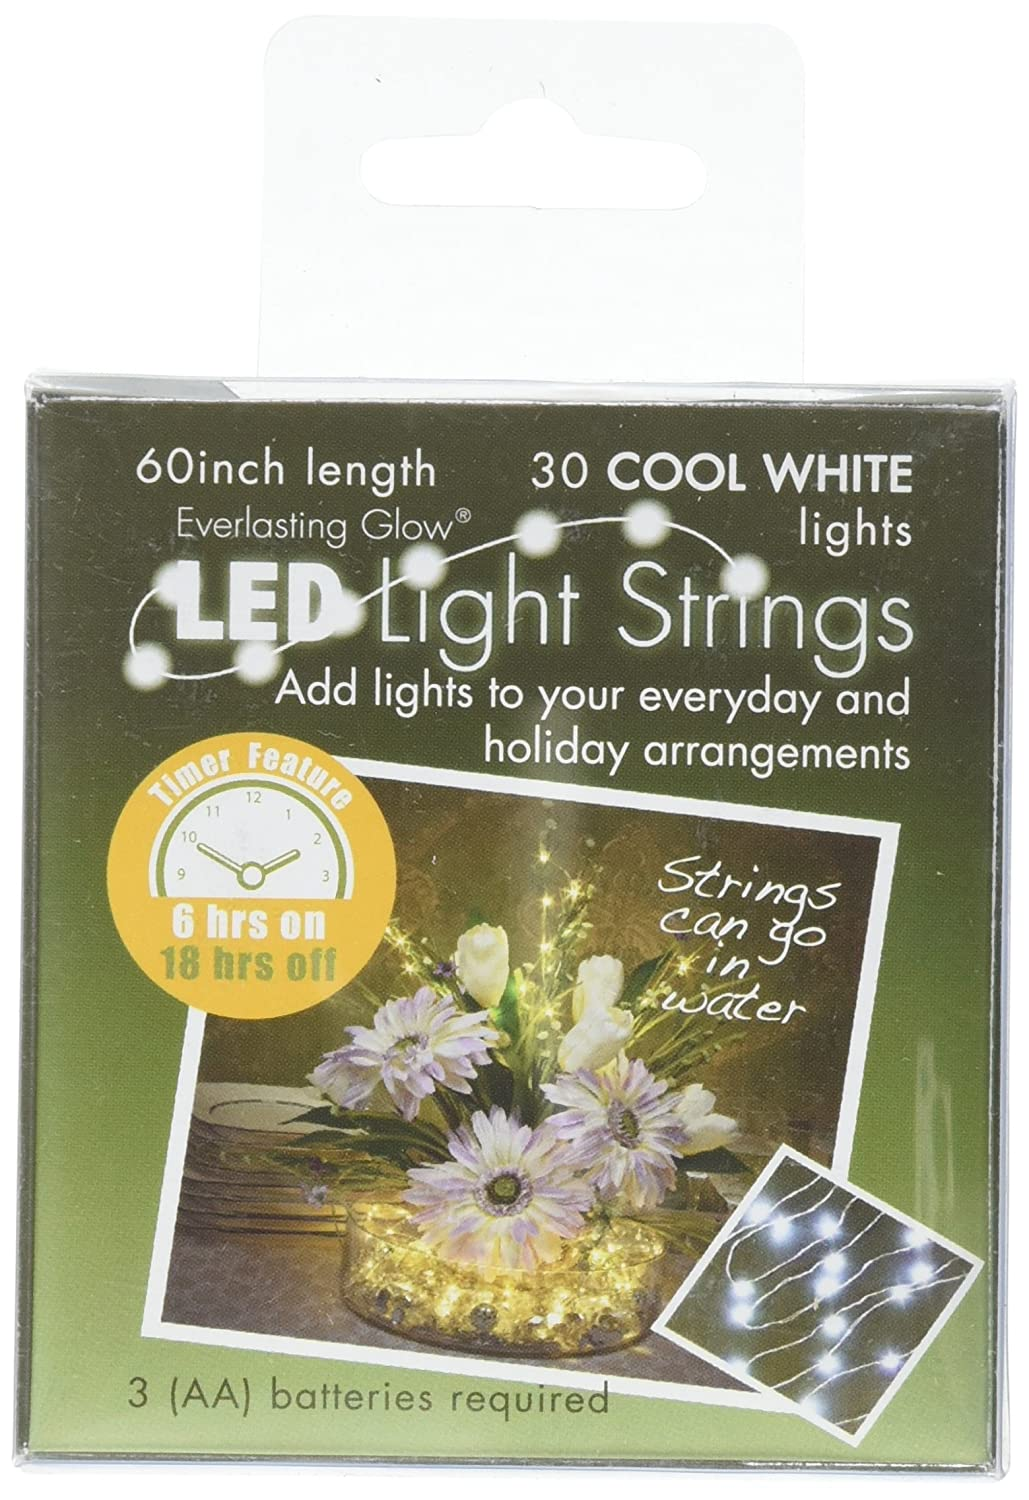 Amazoncom Everlasting Glow LED Micro LED Light String 30 White